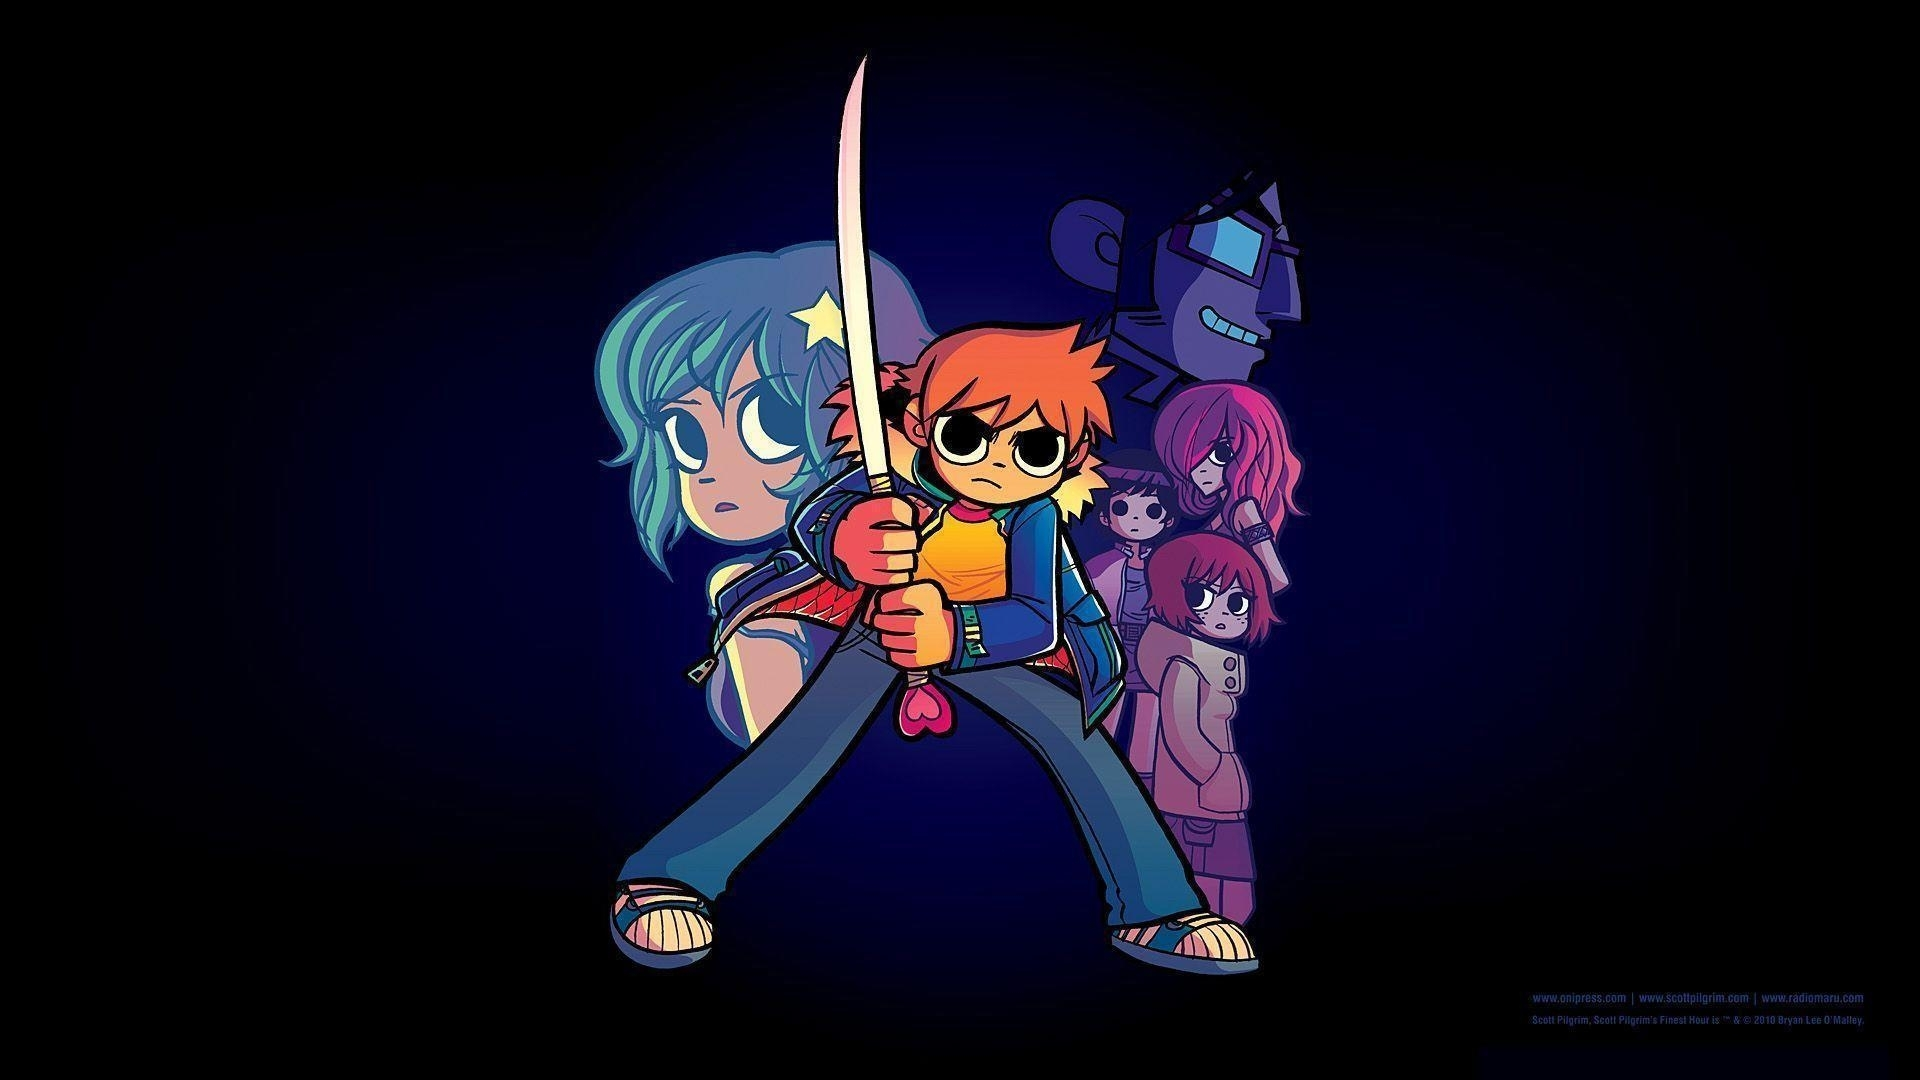 10 Best Scott Pilgrim Desktop Wallpaper FULL HD 1920×1080 For PC Desktop